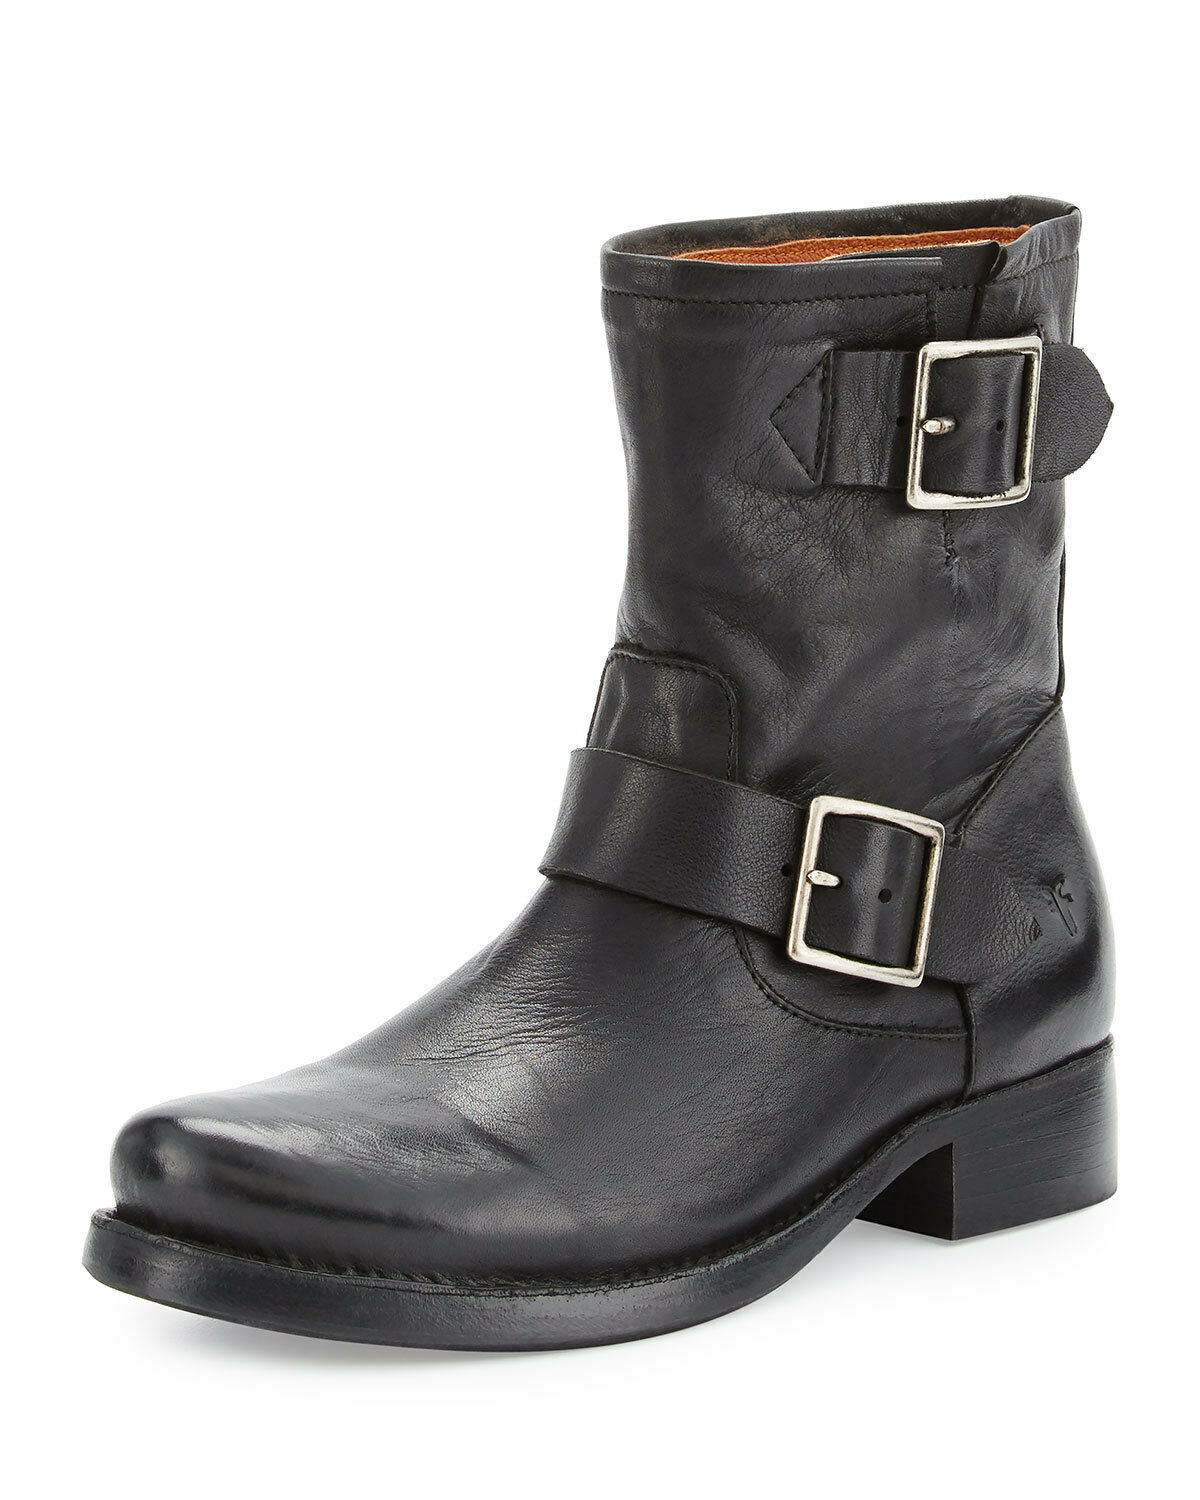 Frye VICKY Engineer Flat Short Zipper Side bottes Ankle démarrageies Riding chaussures 8